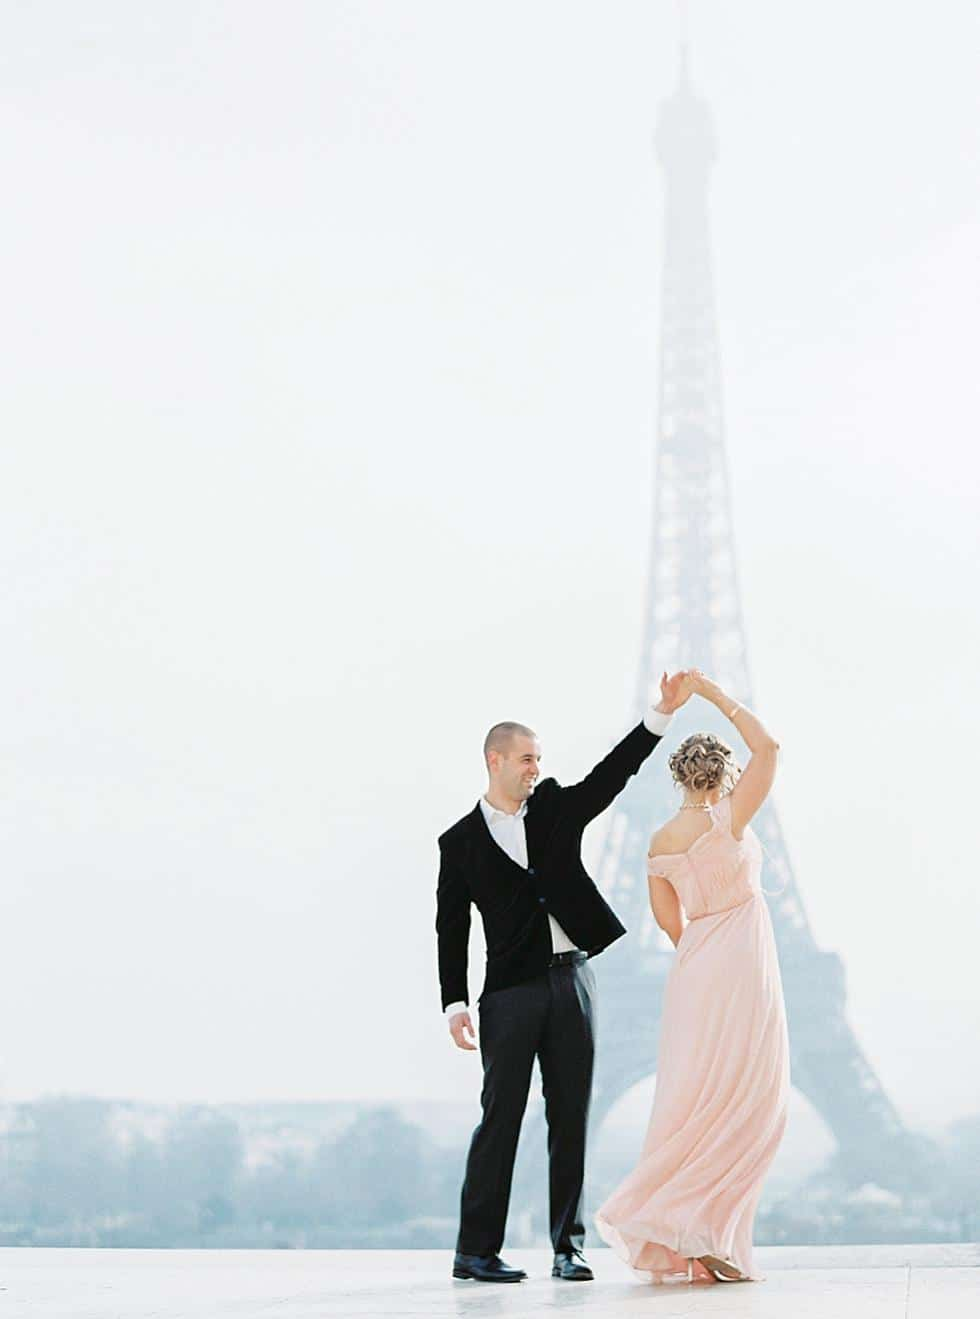 anniversary shoot paris by Gert Huygaerts